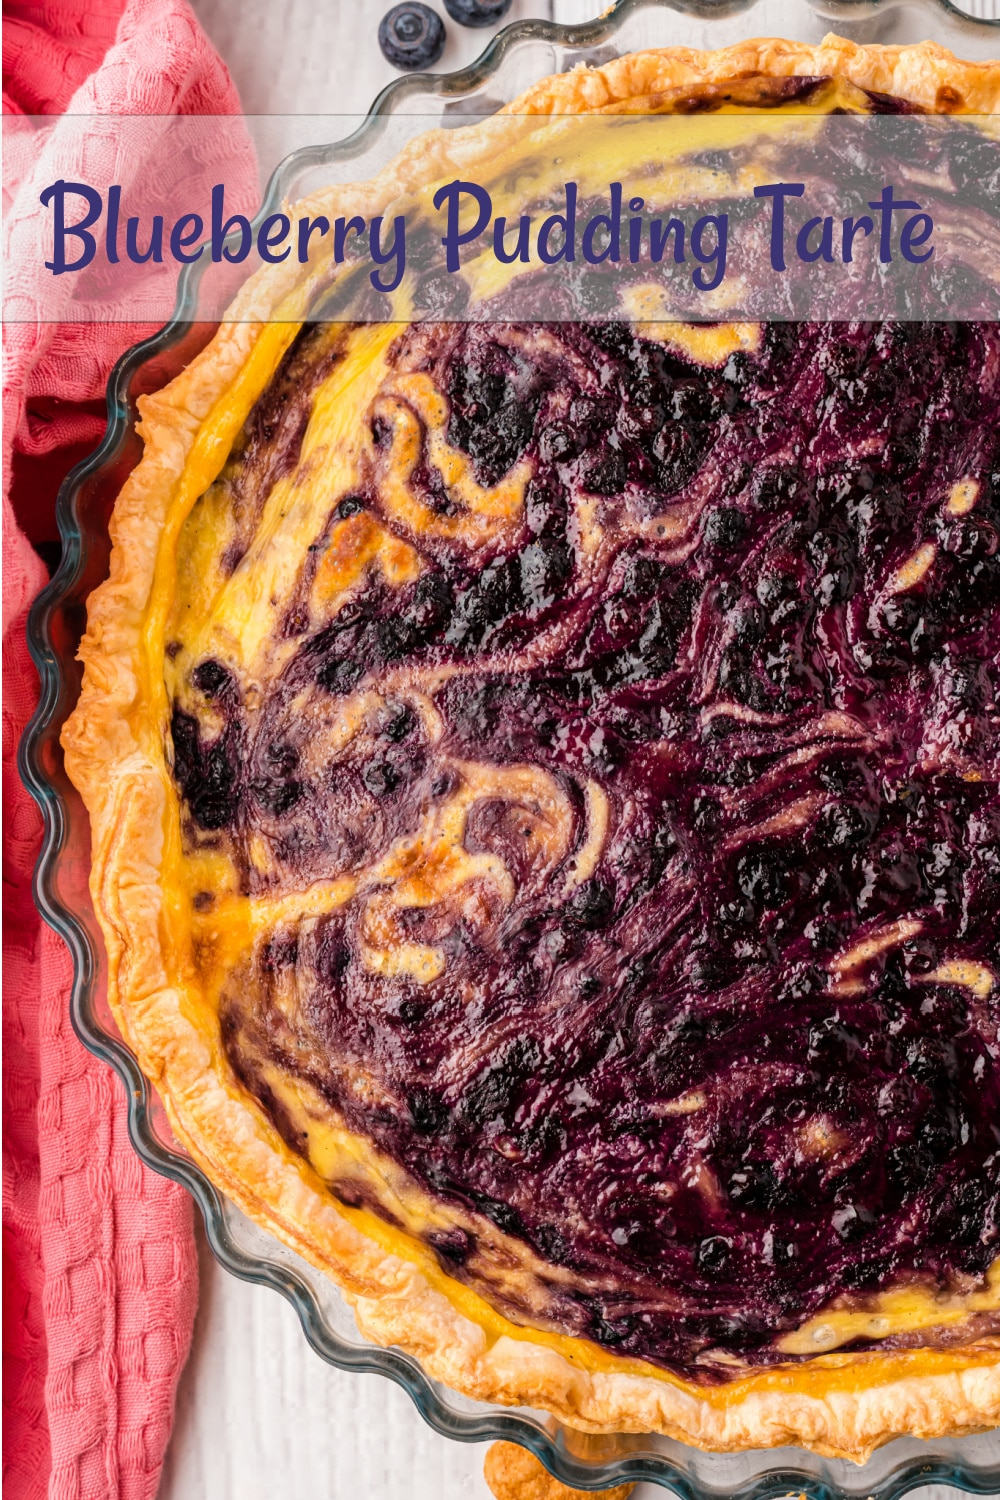 Transform vanilla pudding and blueberry pie filling, with a crisp puff pastry crust, into a pastry-case worthy dessert. This Blueberry Pudding Tart is a showstopper and tastes as good as it looks. via @cmpollak1